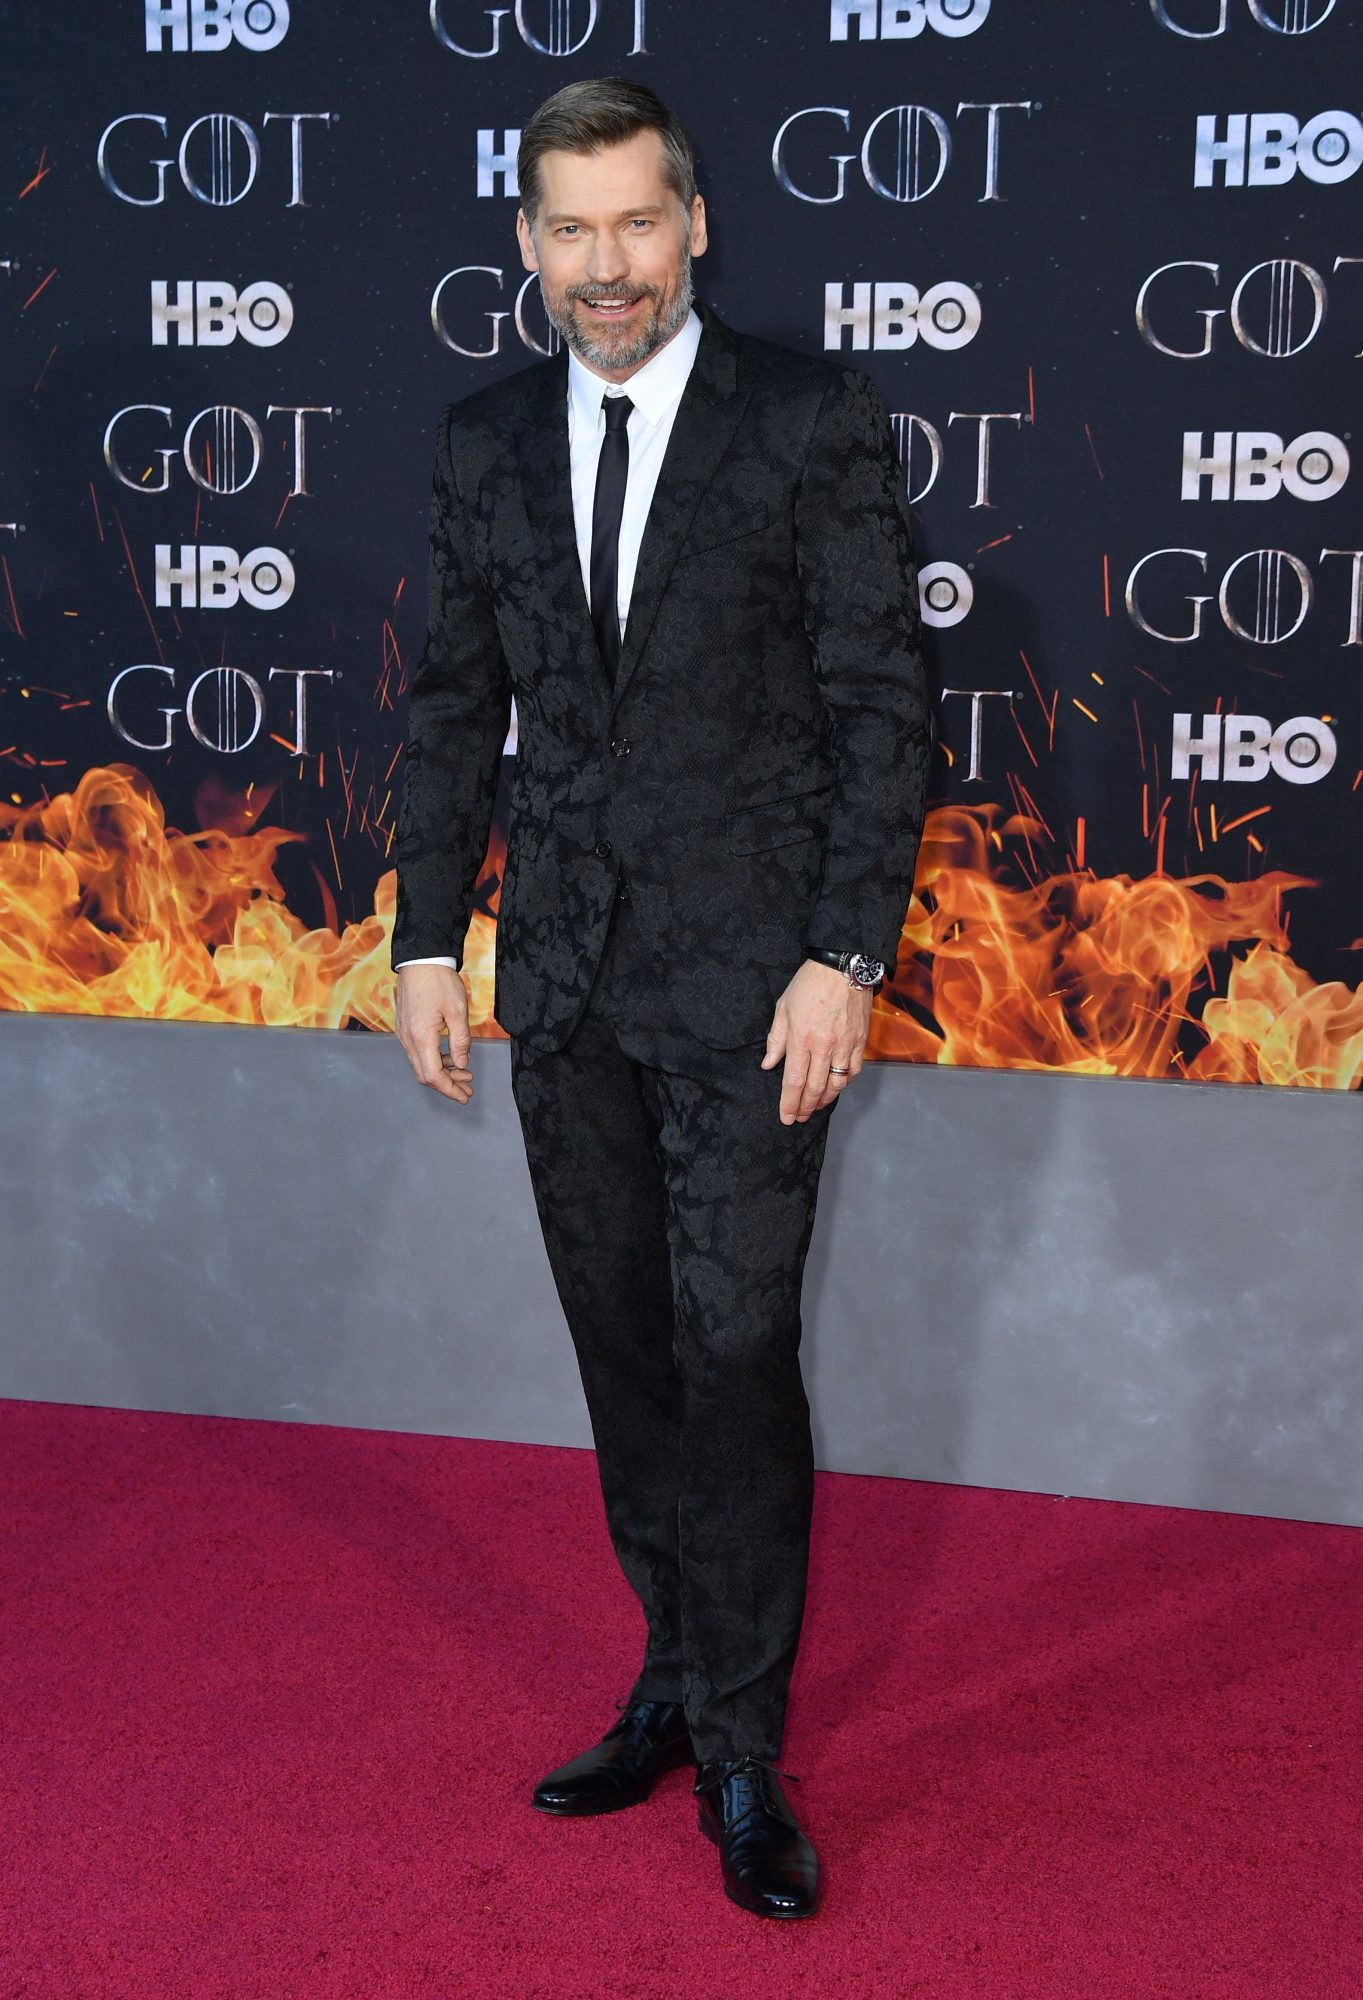 """Danish actor Nikolaj Coster-Waldau arrives for the """"Game of Thrones"""" eighth and final season premiere at Radio City Music Hall on April 3, 2019 in New York city. (Photo by Angela Weiss / AFP)        (Photo credit should read ANGELA WEISS/AFP/Getty Images)"""